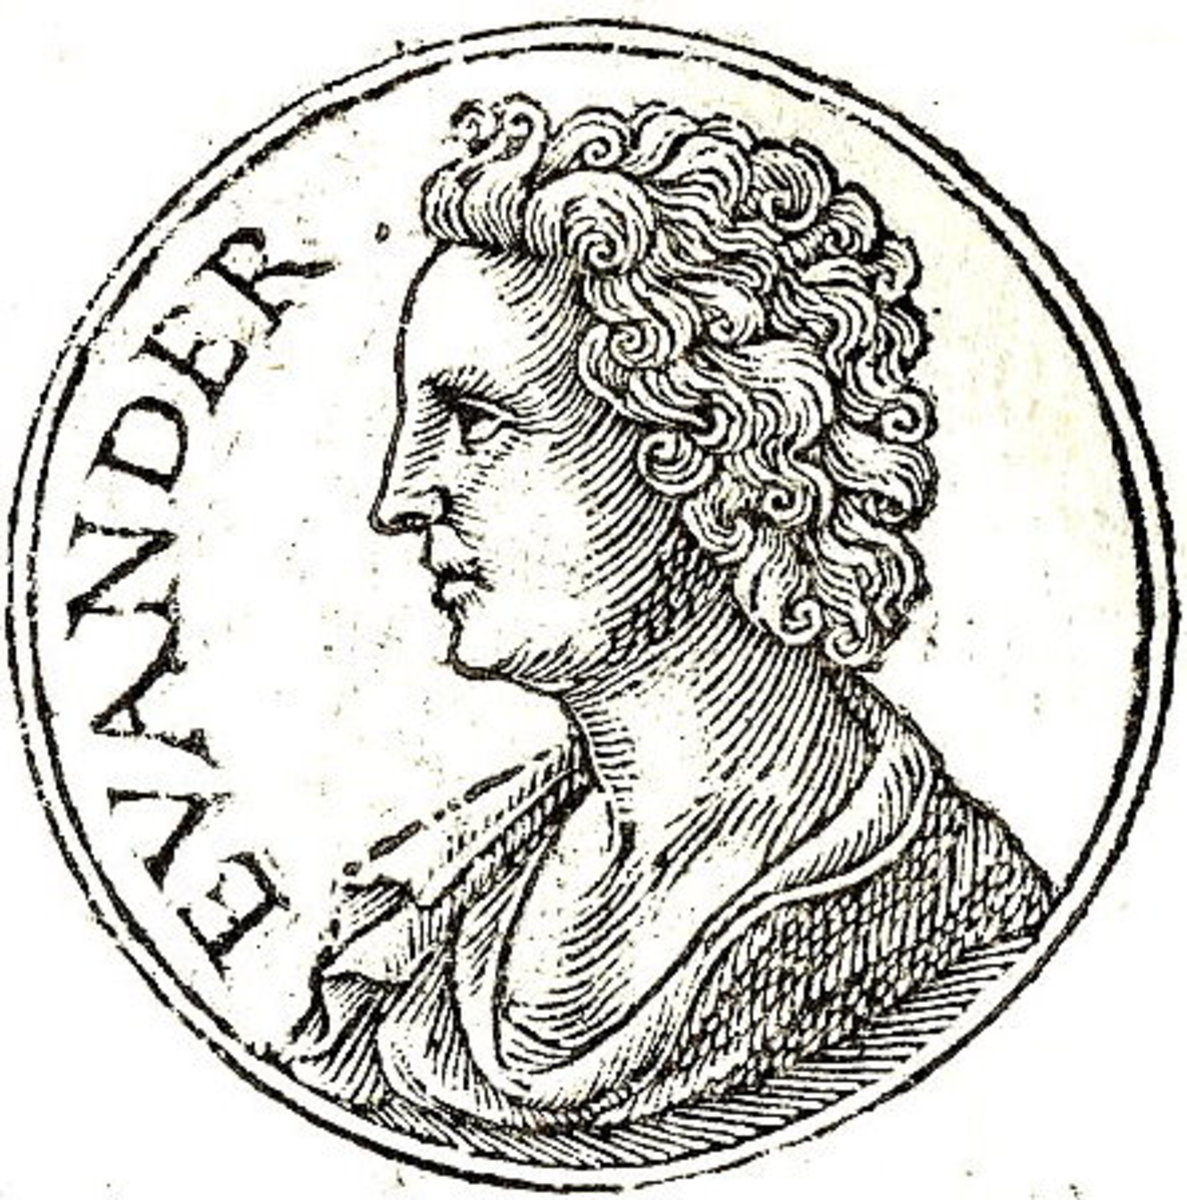 Evander Son of Hermes